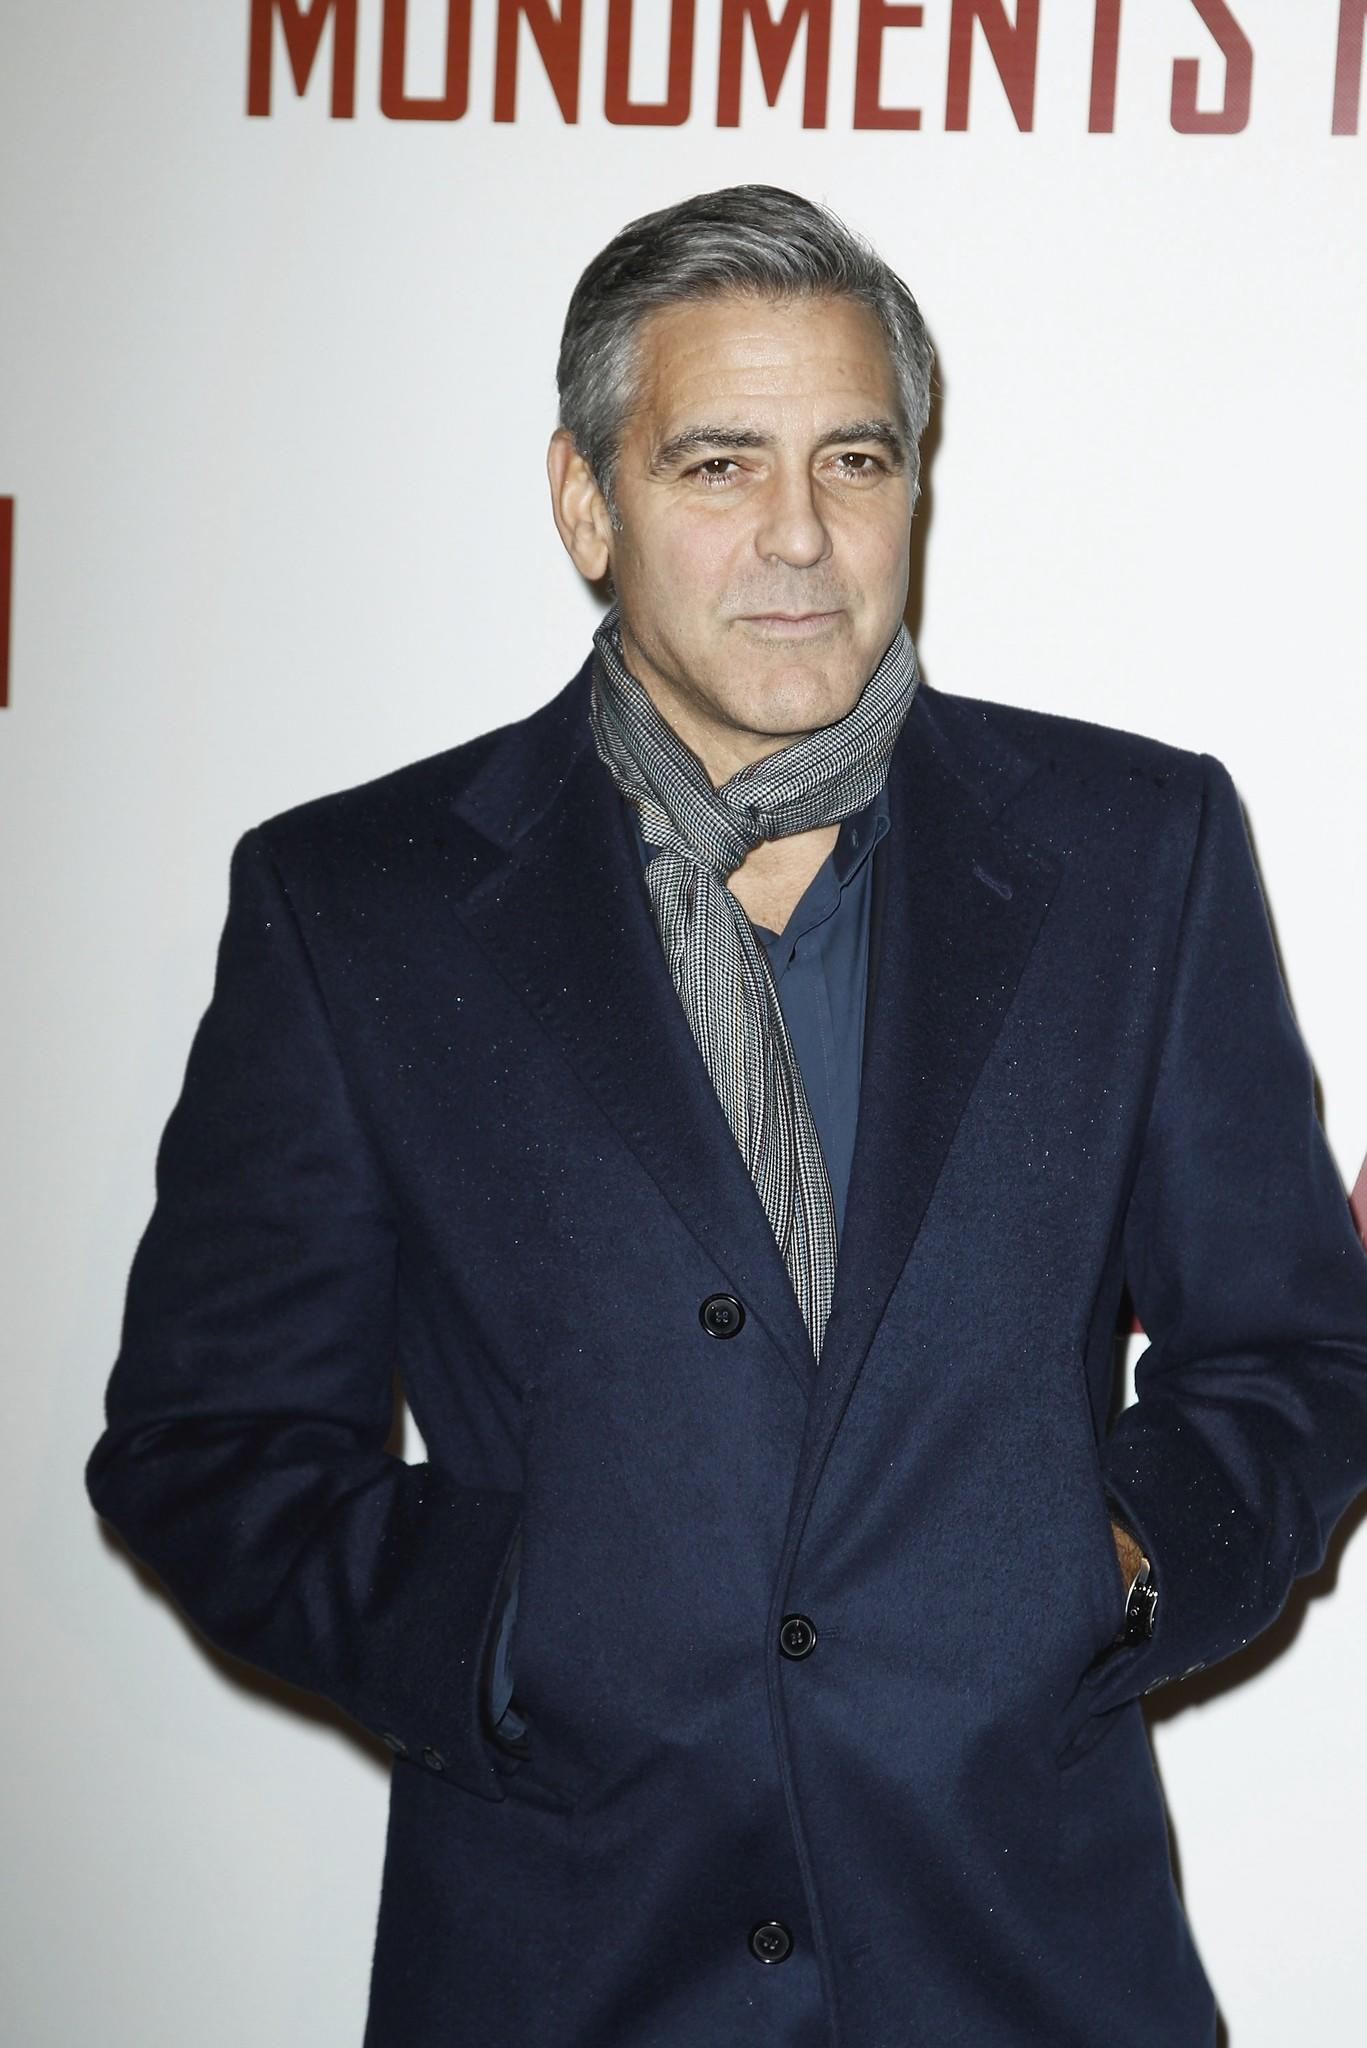 George Clooney attends 'Monuments Men' Paris premiere at Cinema UGC Normandie in Paris, France.